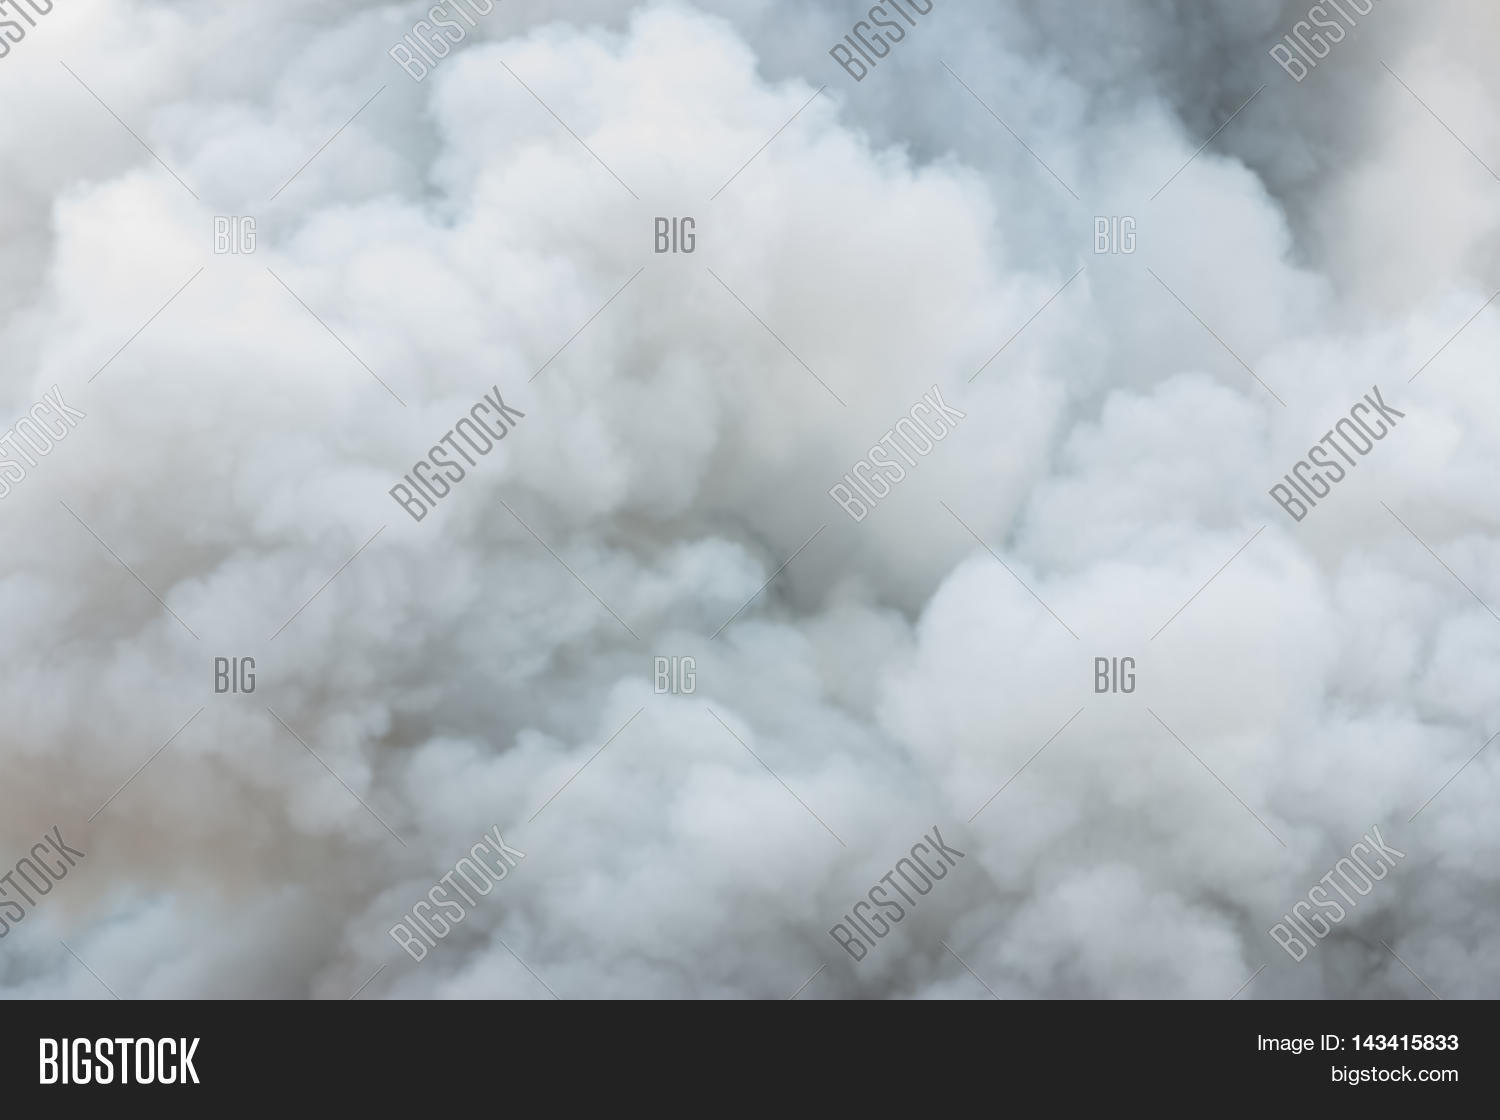 Thick White Smoke On Black Image & Photo | Bigstock